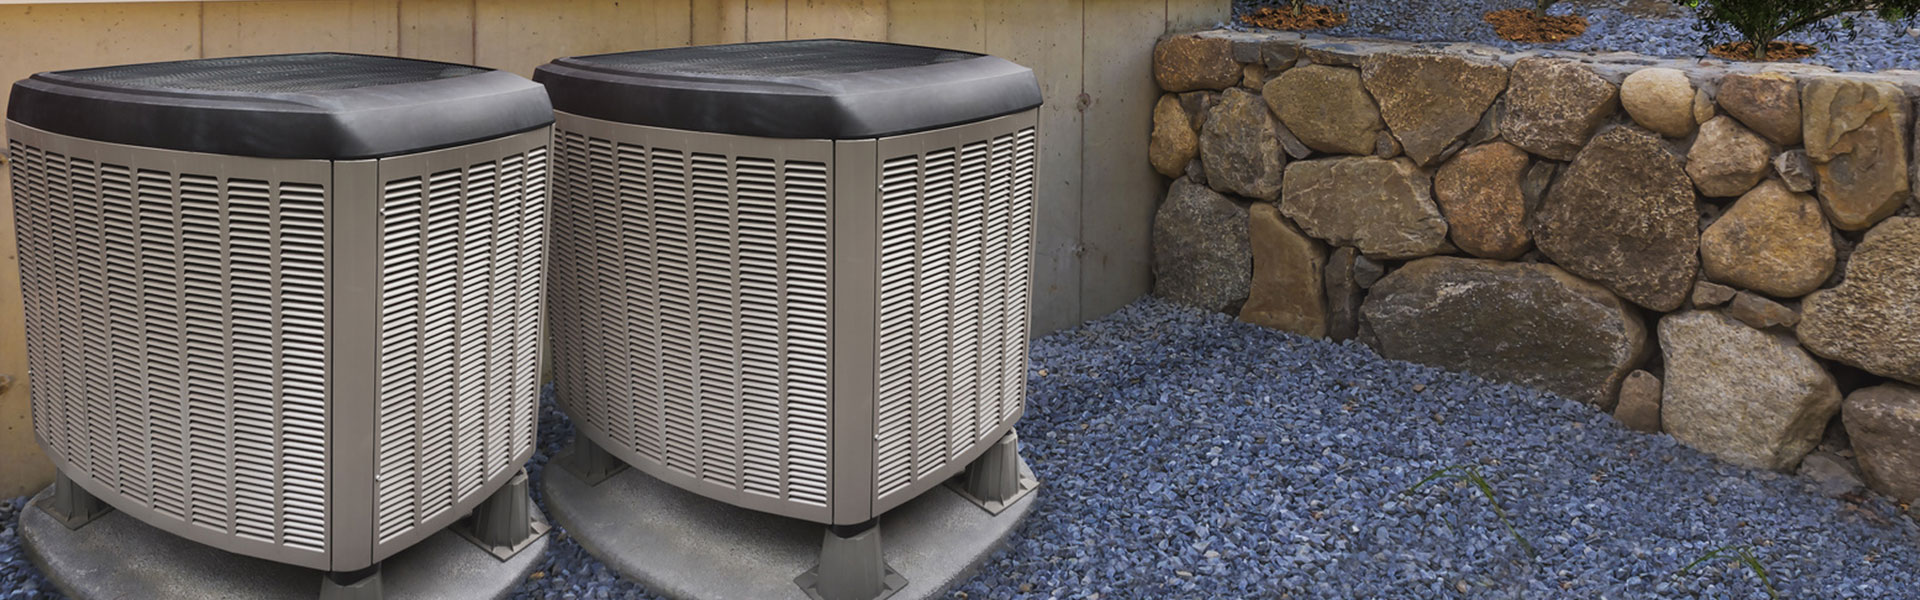 Kona Air Conditioning